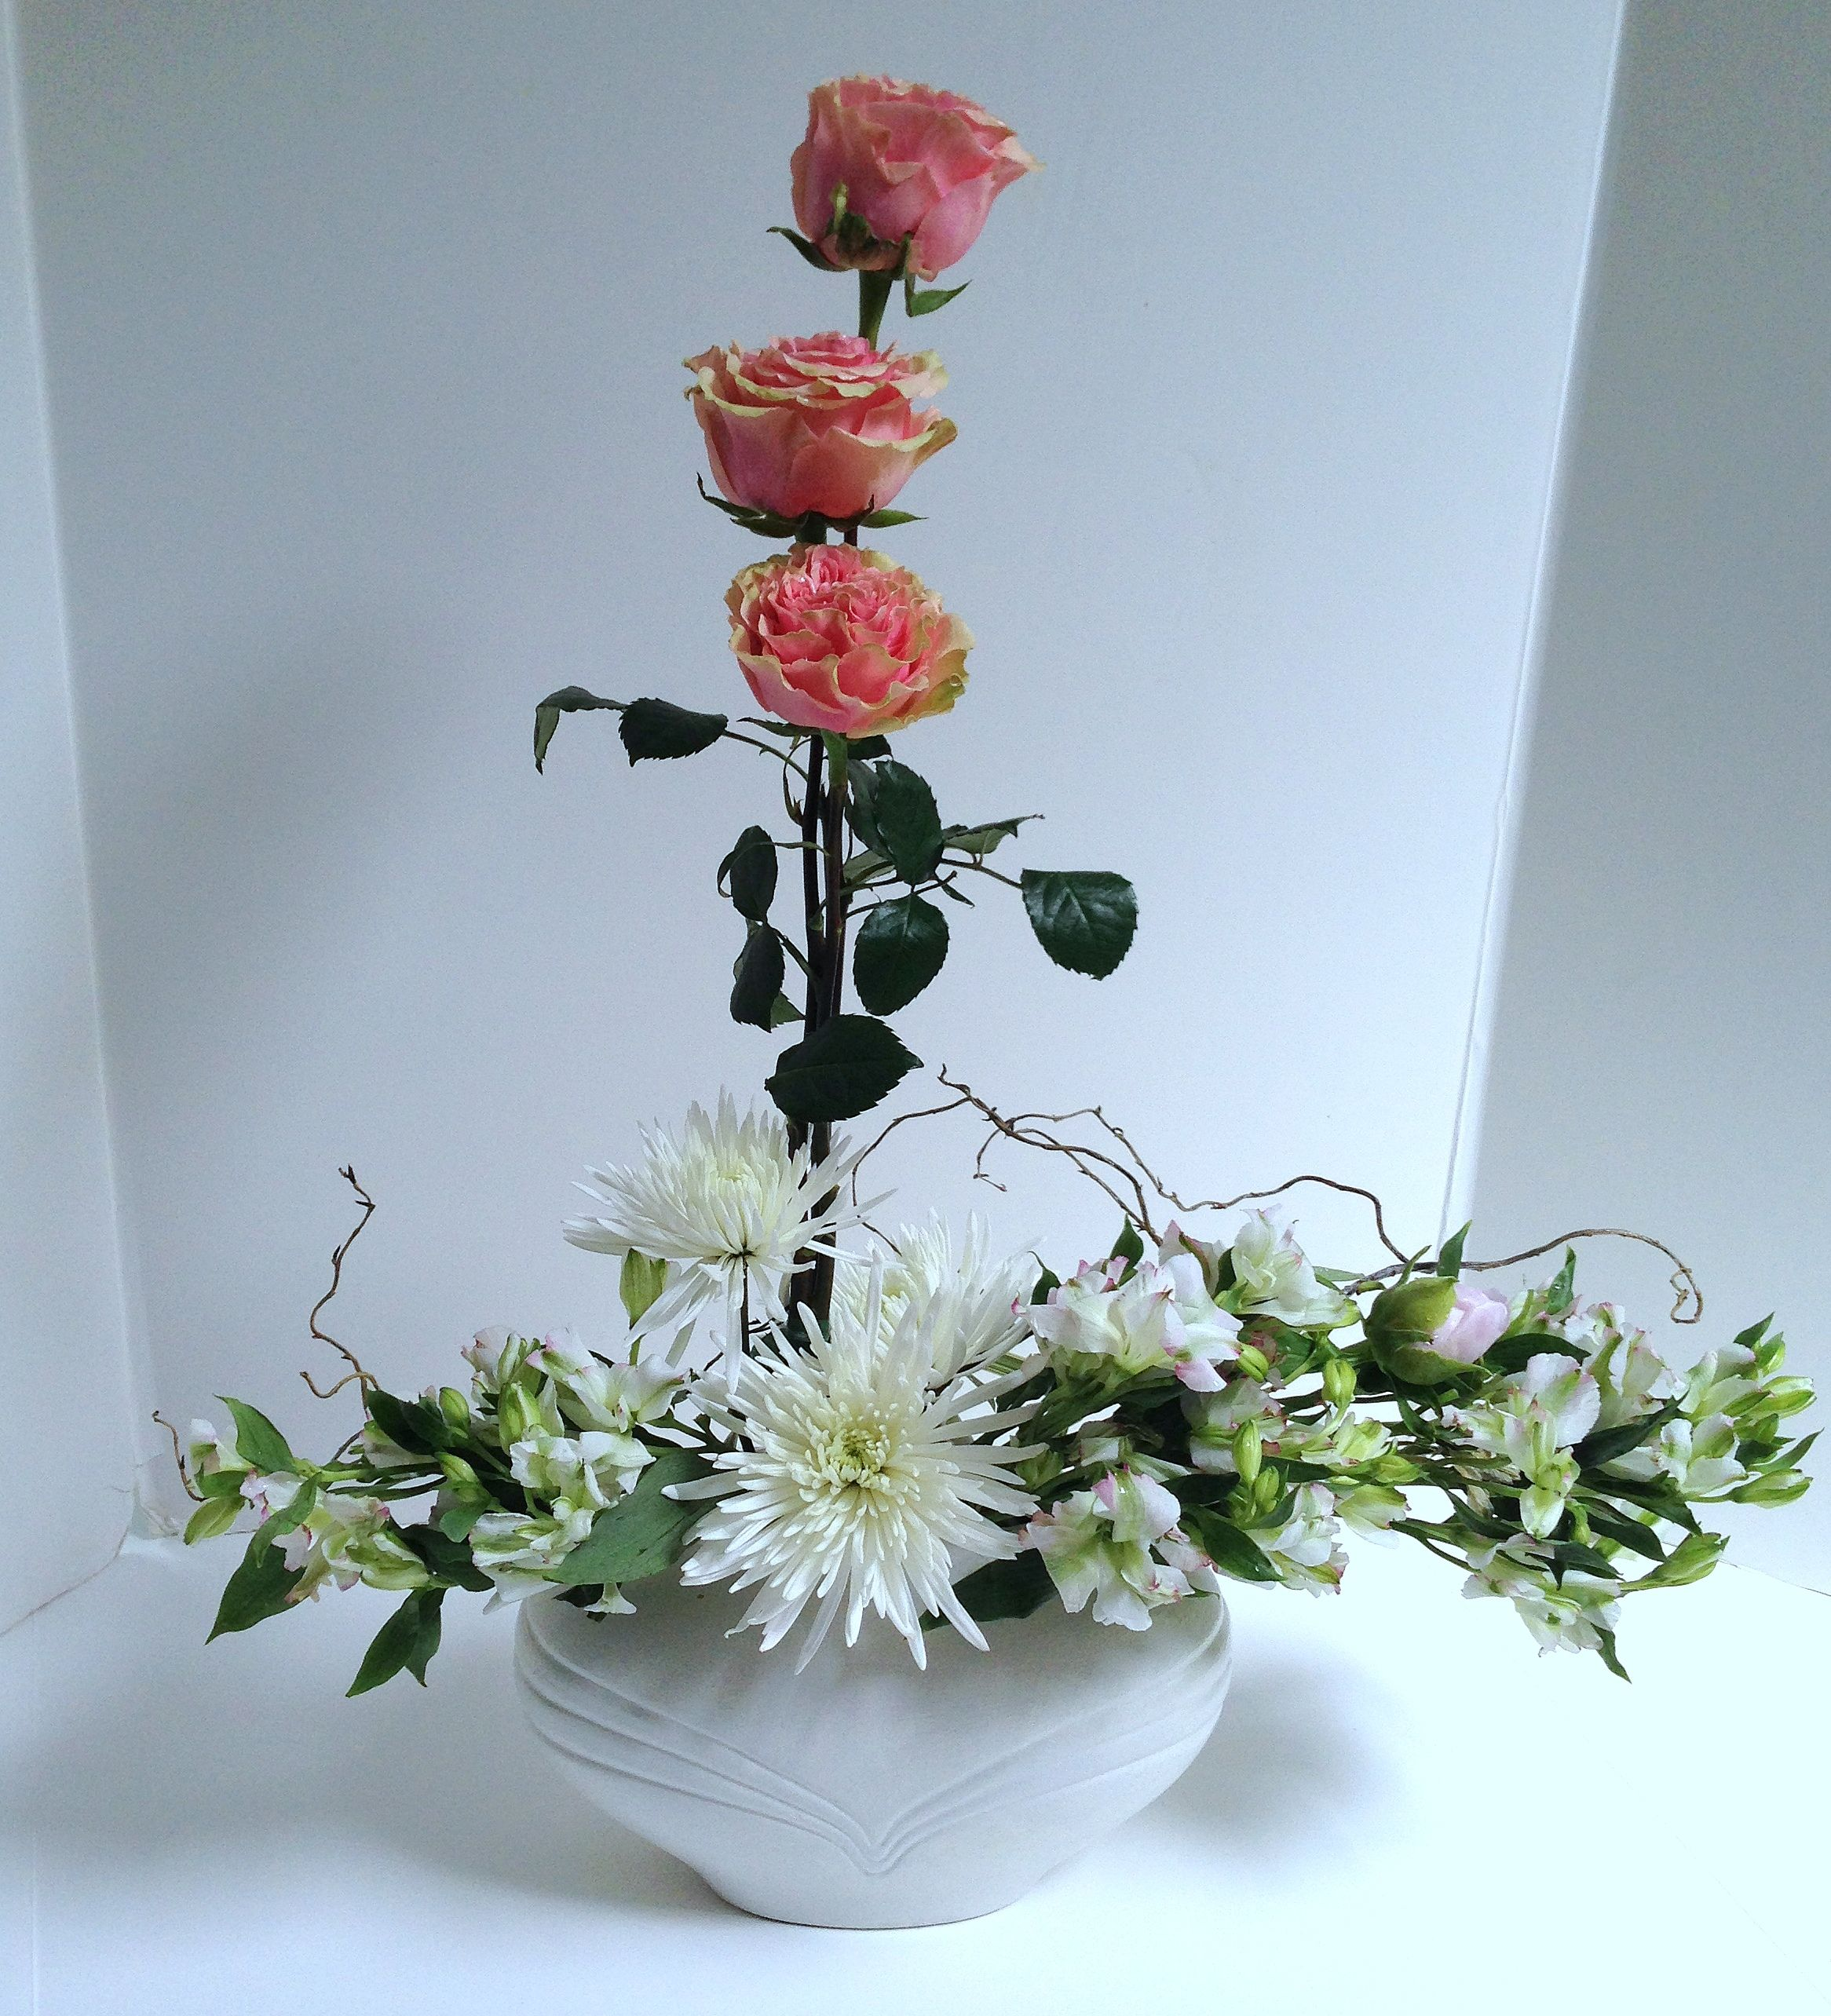 Delicate Garden Roses Stand Tall Over The Bed Of White Flowers In